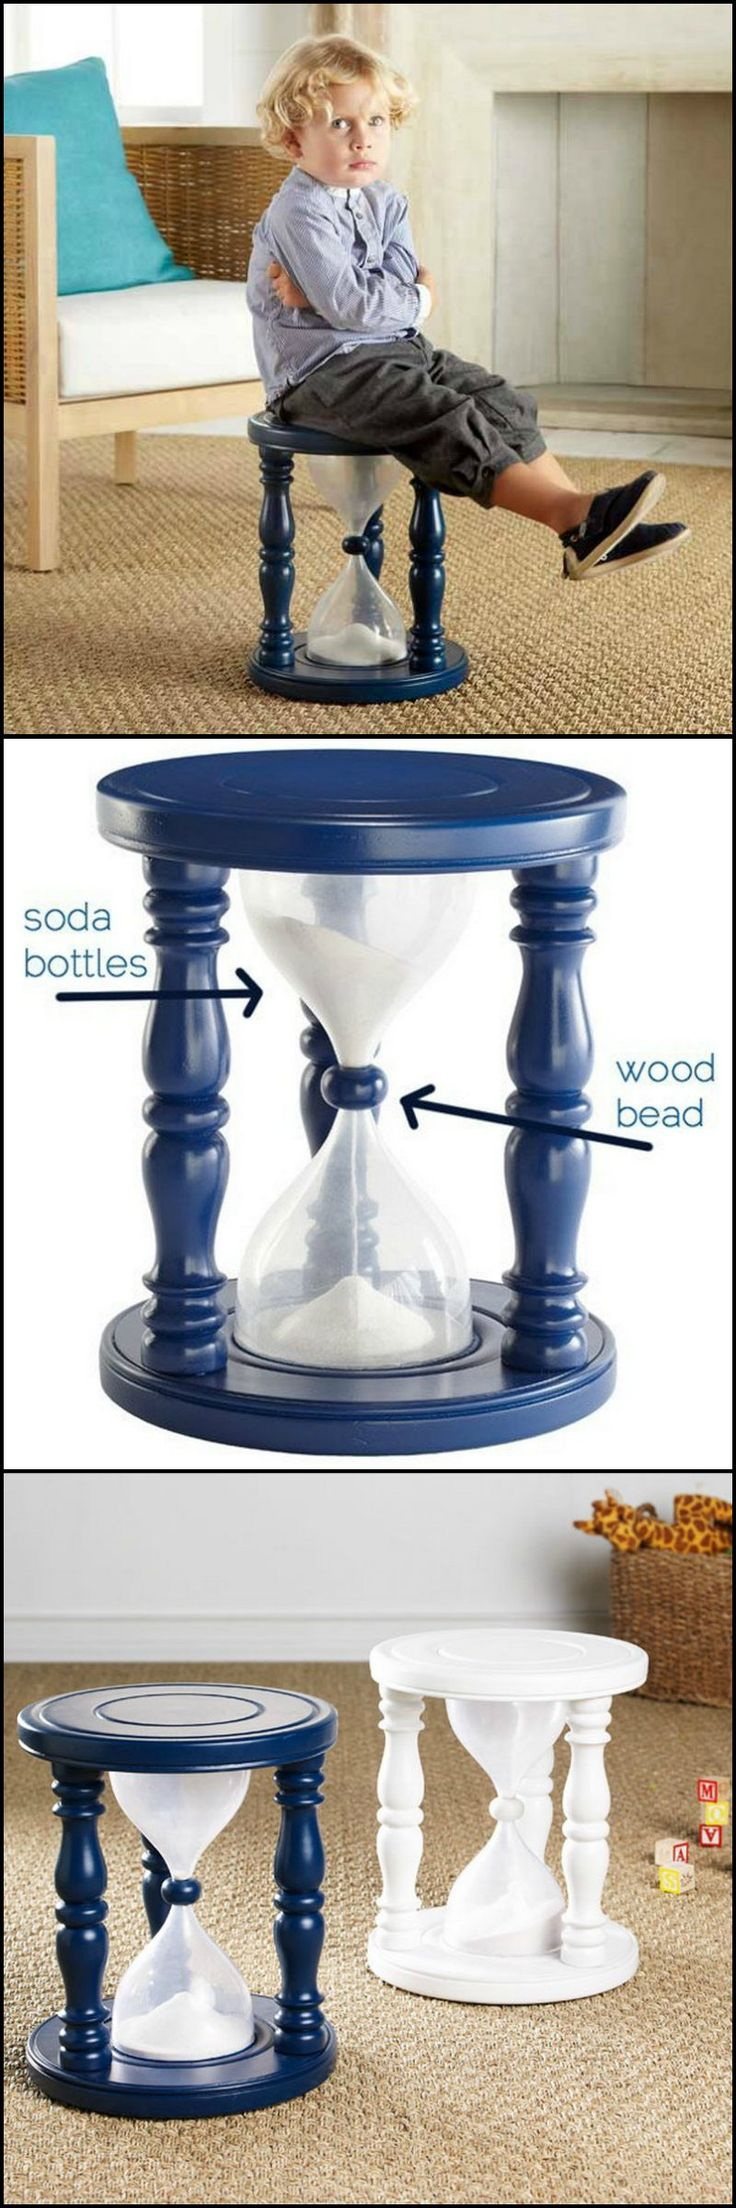 Instead of banishing your children to the dungeon every time they have a hissy fit, why not use this clever 'Time Out Stool'.   http://kids.ideas2live4.com/2015/04/02/make-a-sandglass-time-out-stool-for-the-kids/  You can make one using a recycled plastic bottle.  What do you think?